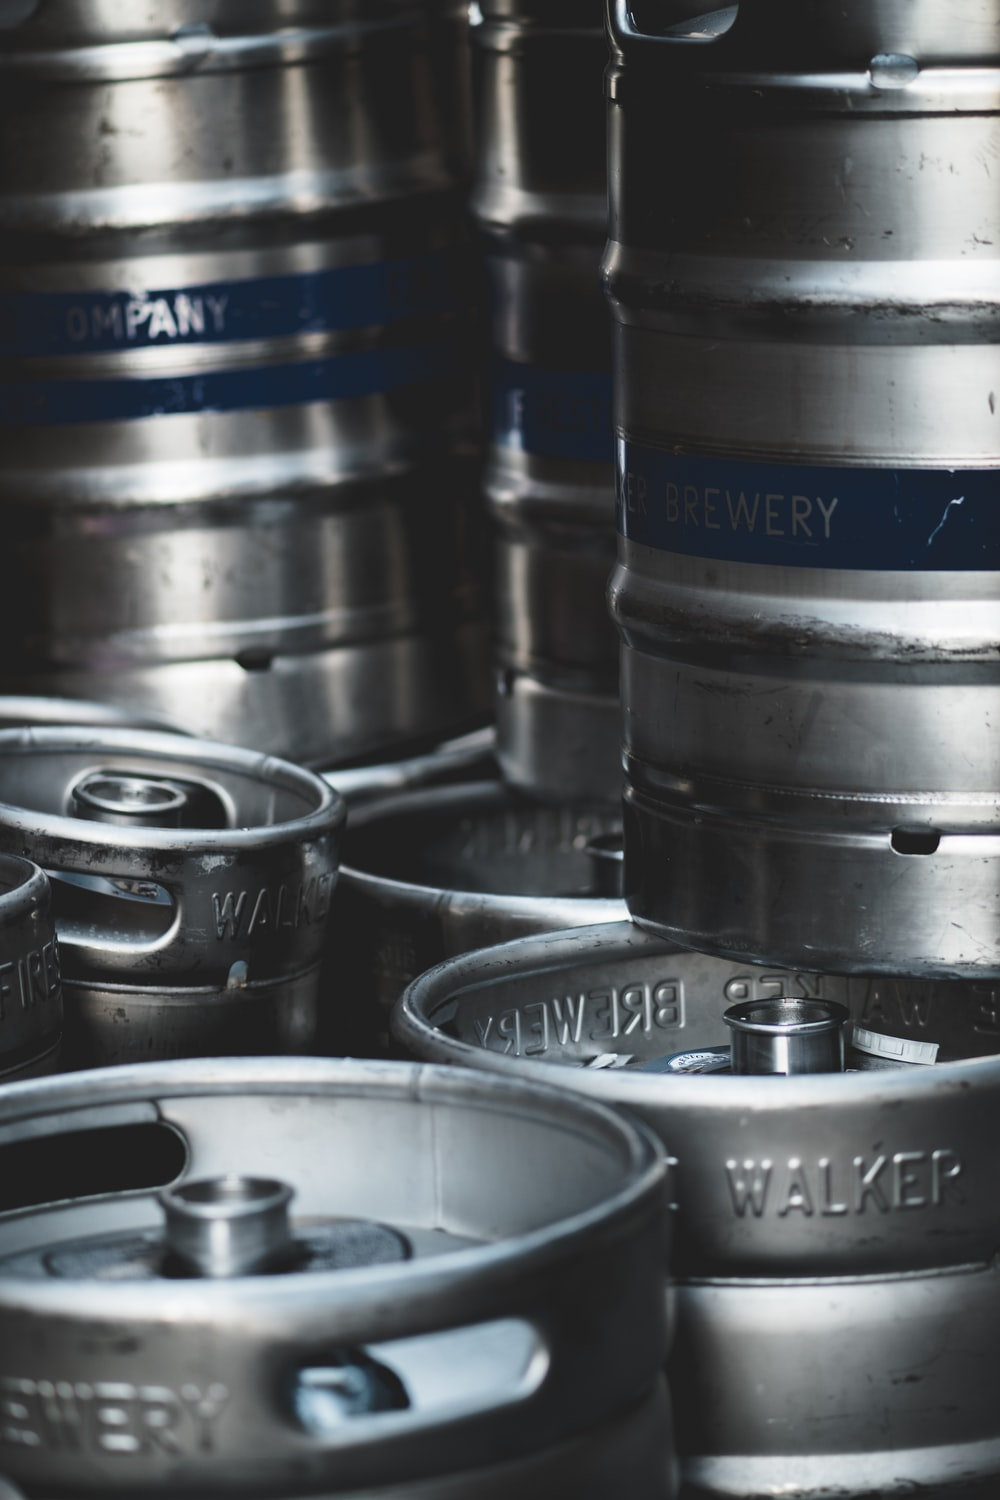 4 stainless steel barrels on black plastic container